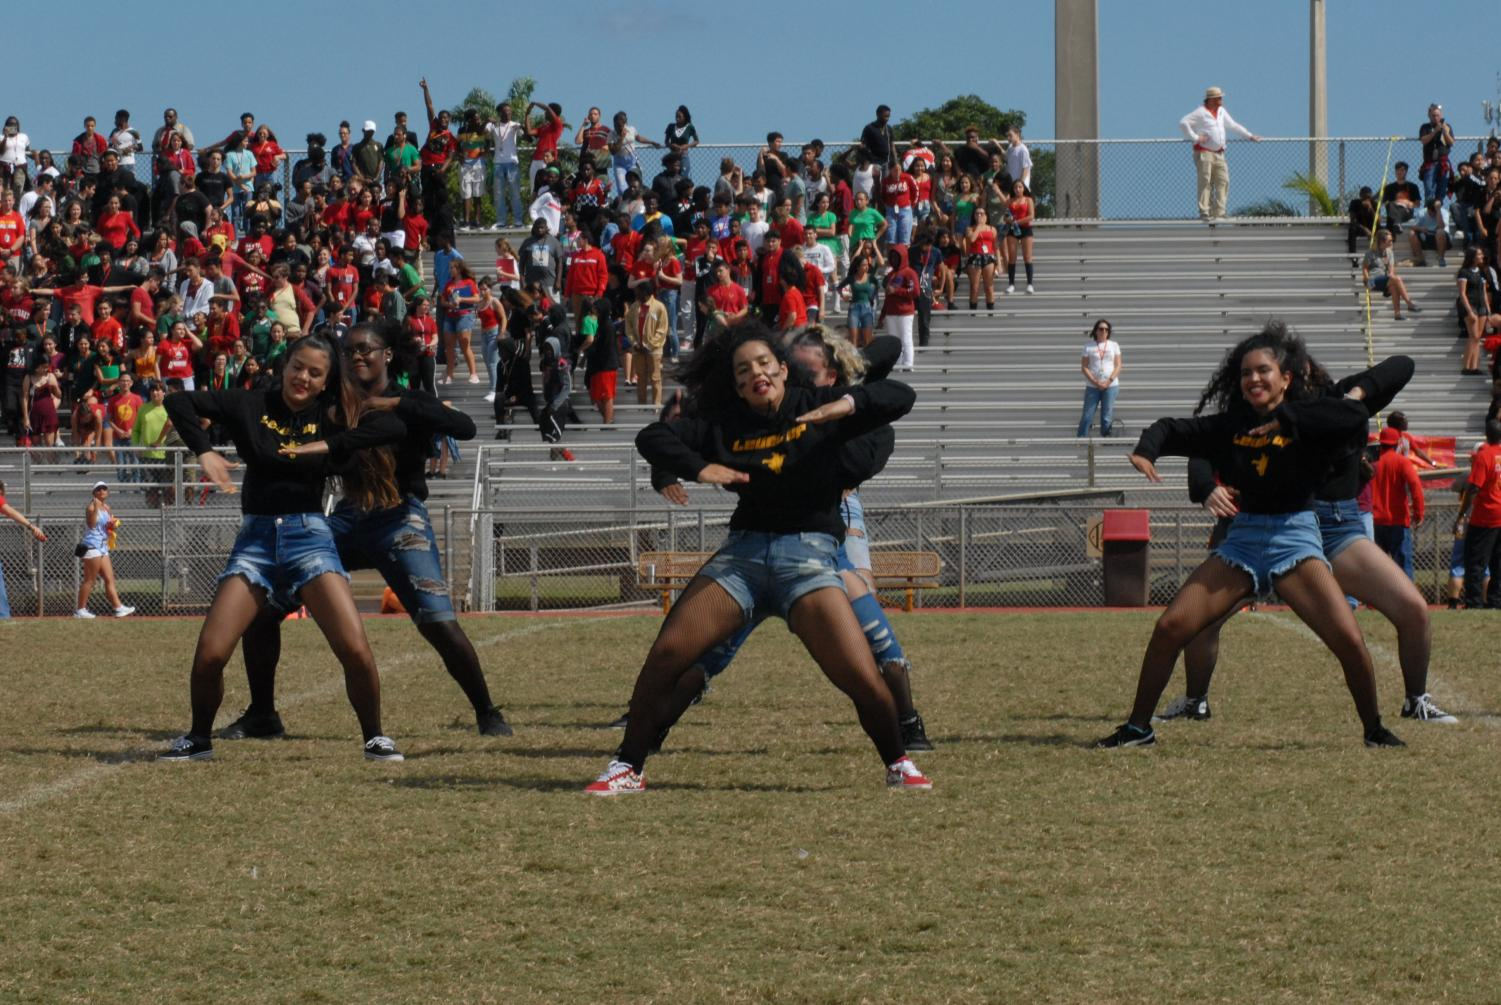 The dance team getting the crowd hyped with their dance moves .